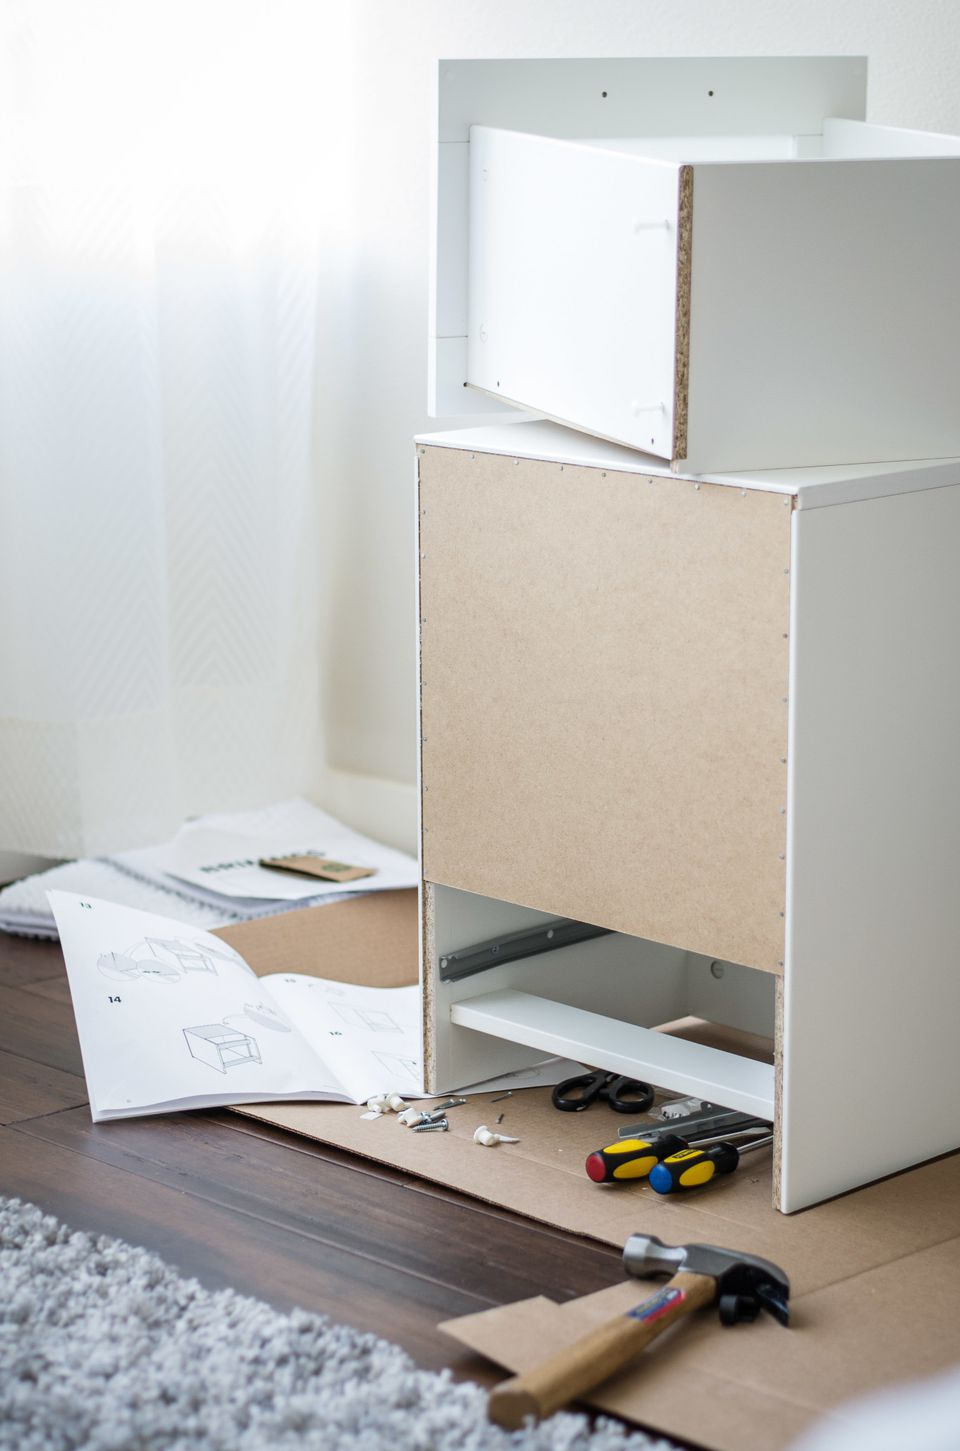 home improvement projects under $100 / assembling furniture